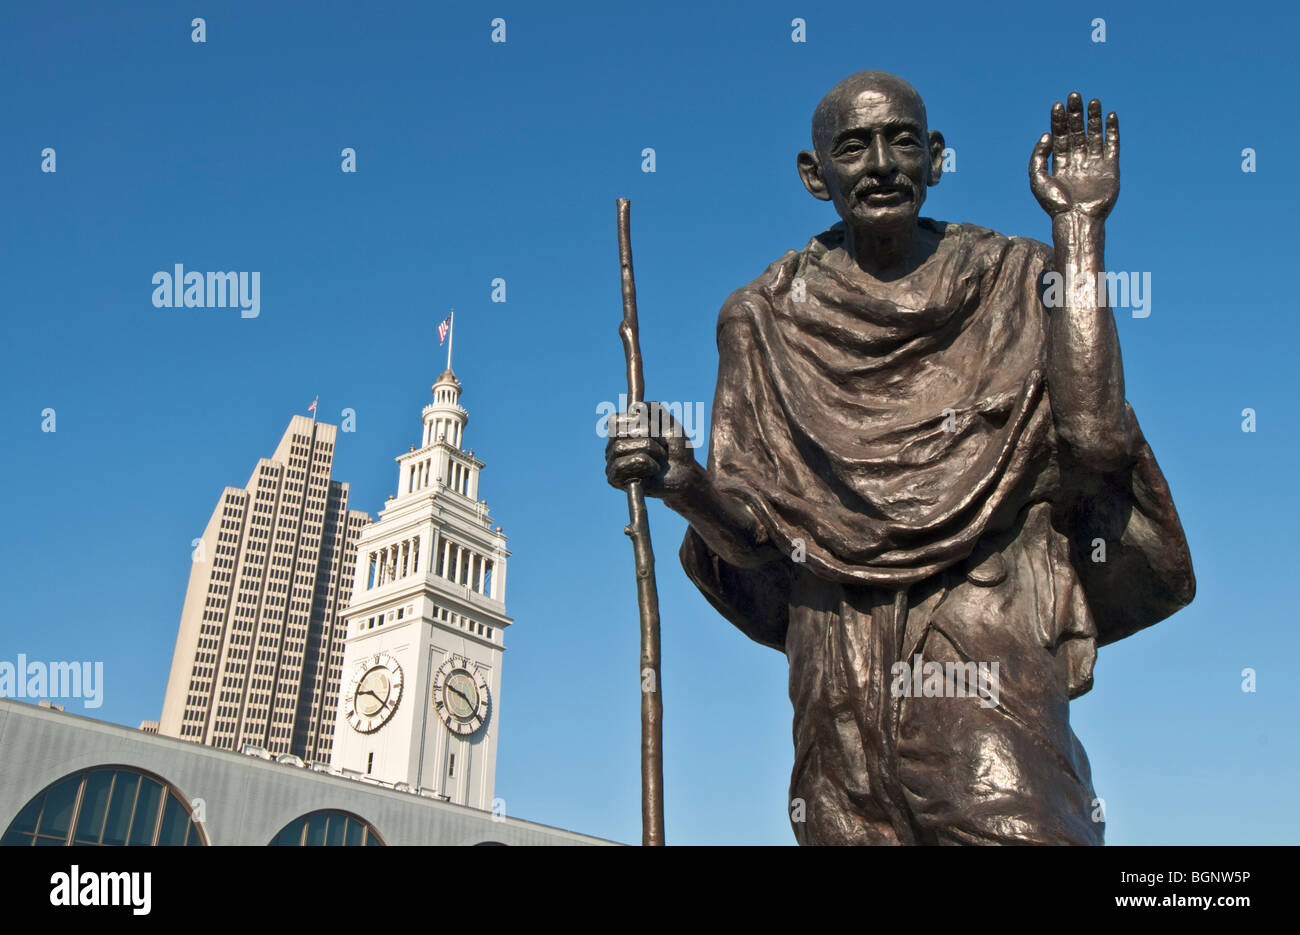 California San Francisco Ferry Building Clock Tower Ferry Plaza statue of Mohandas Karamchand Gandhi - Stock Image